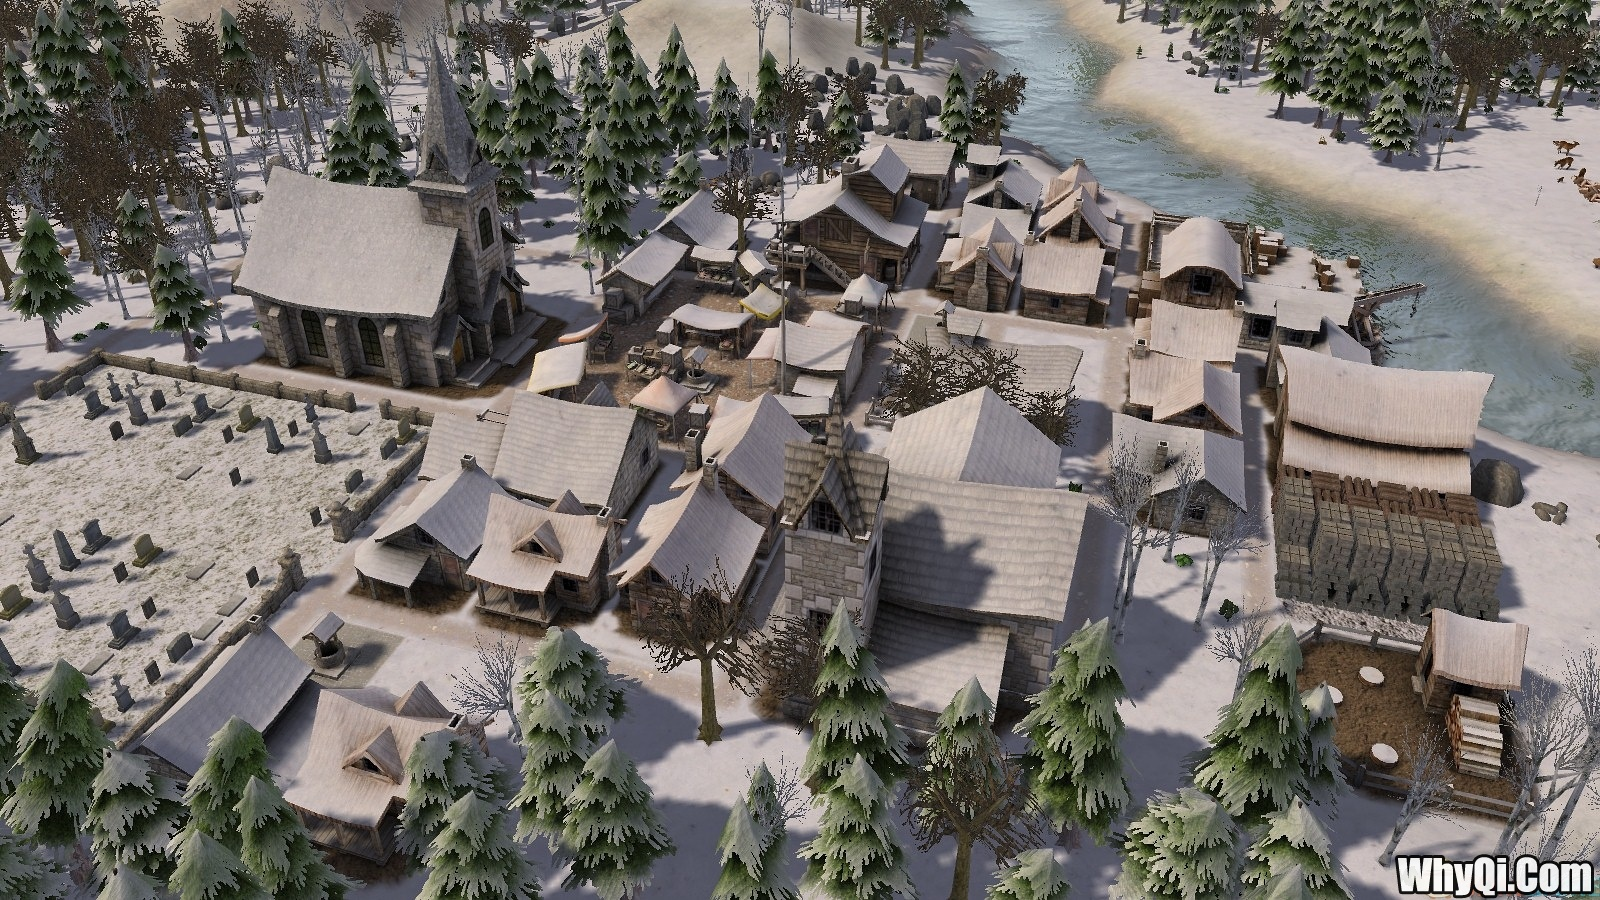 |PC-[放逐之城]Banished 64位+32位游戏CE修改下载 [作弊器] [修改器] [Cheat Engine]|Banished|原创资源|歪奇| 4